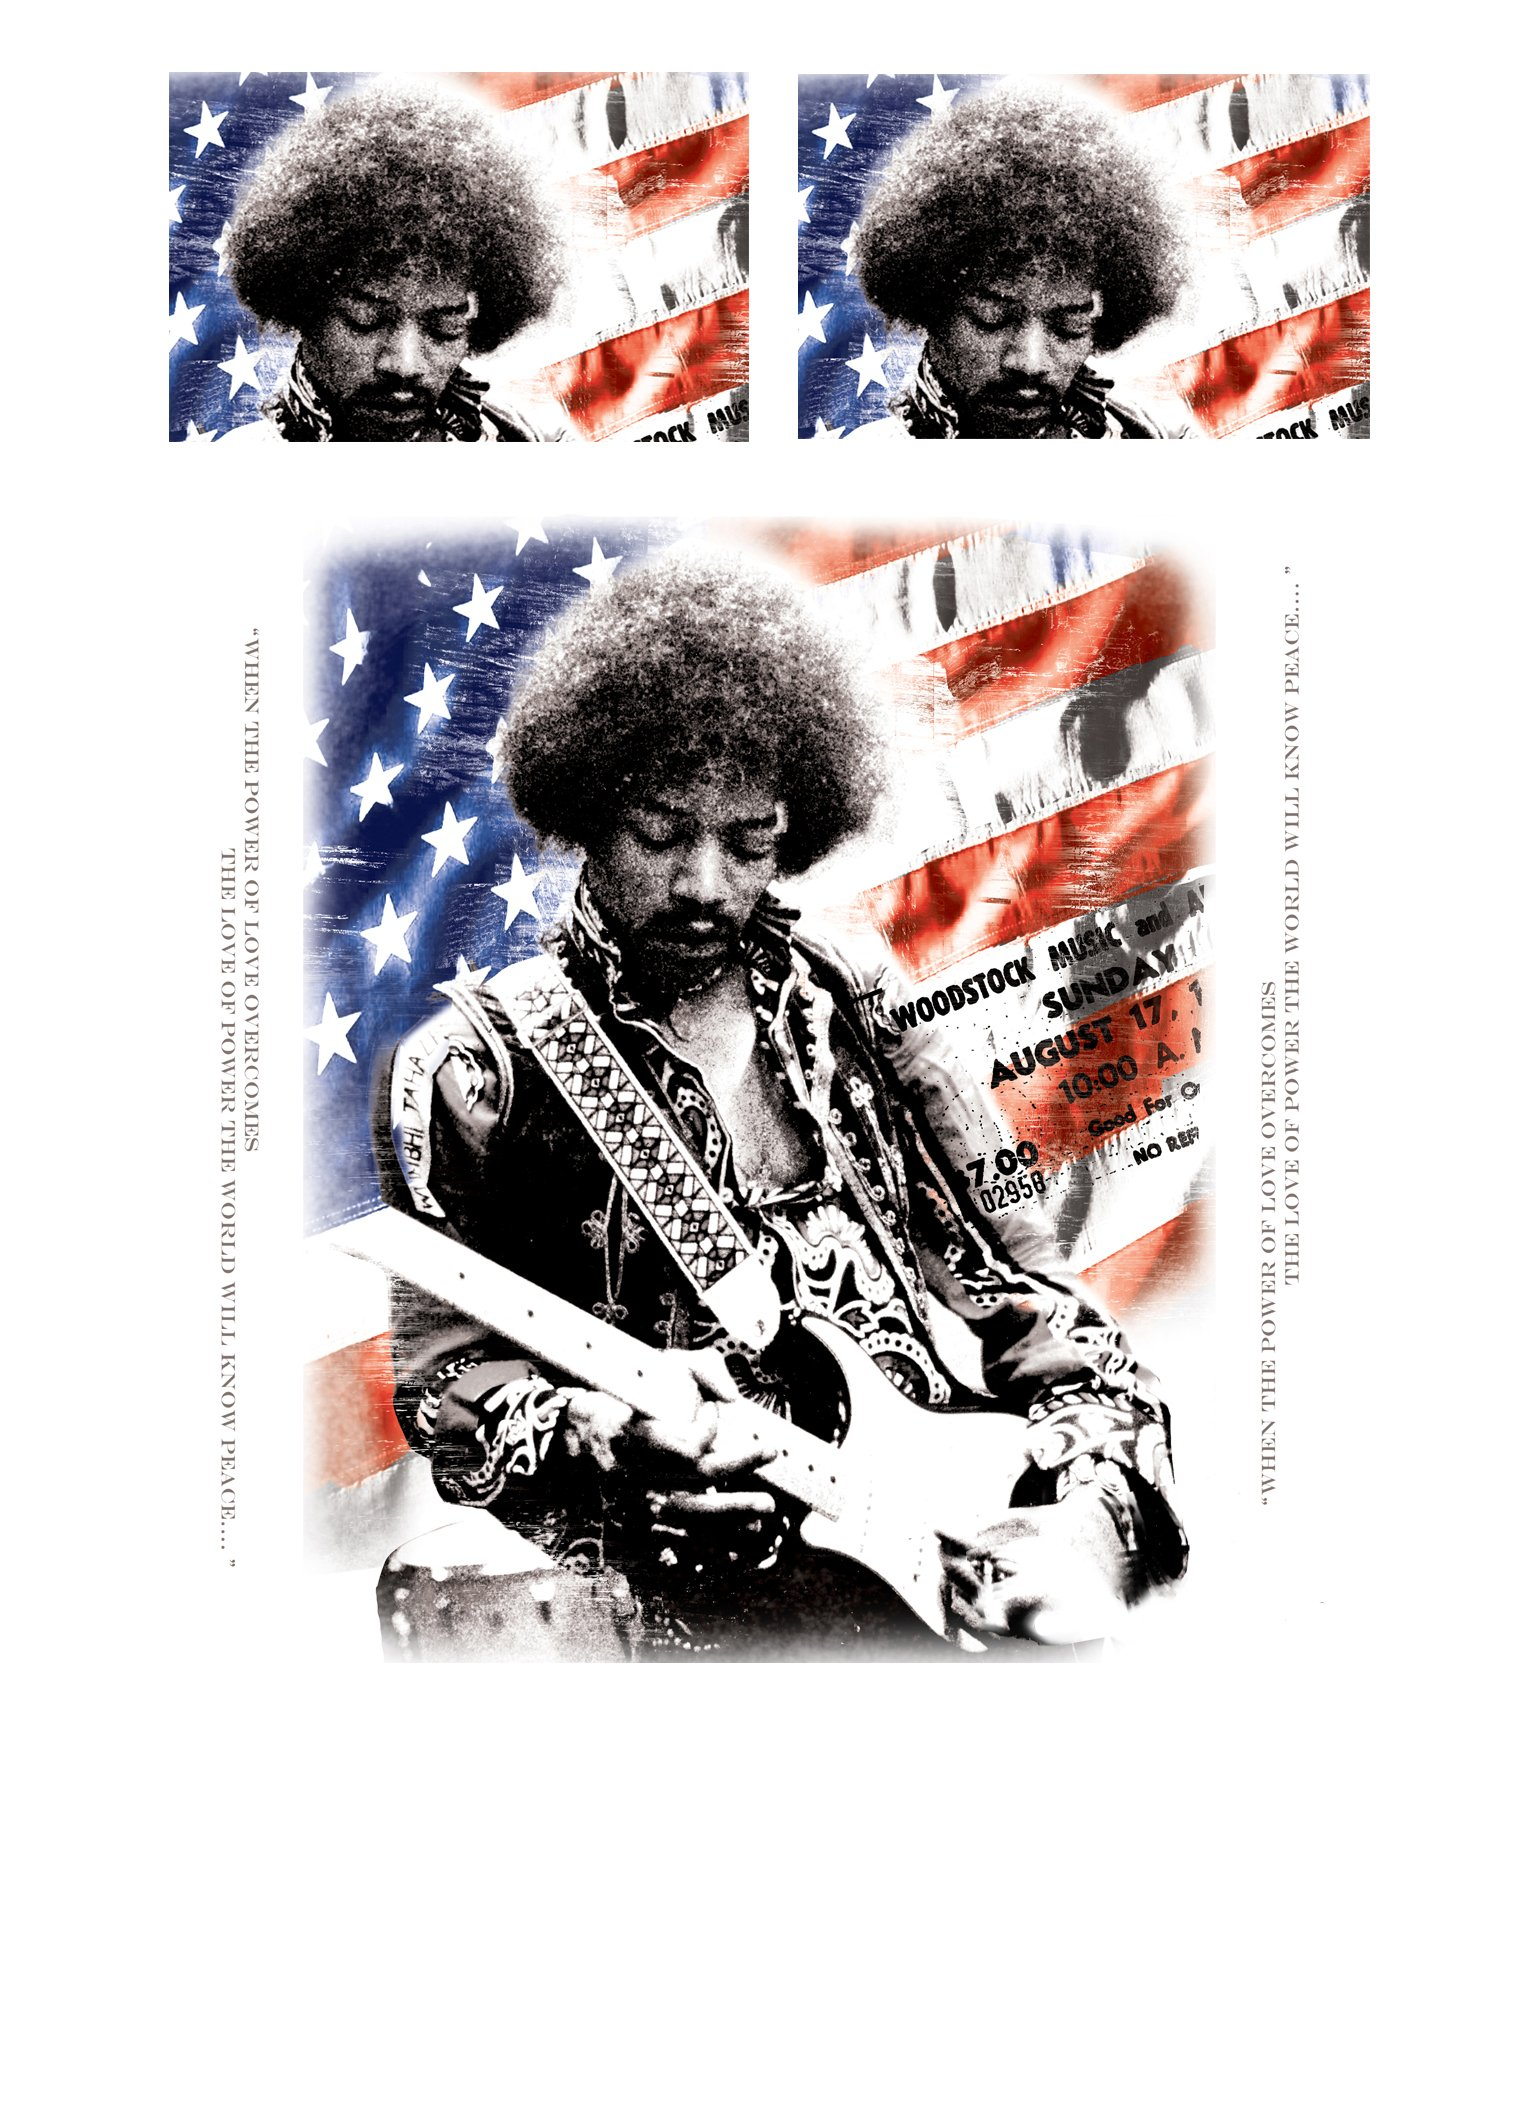 Jimi Hendrix - LOVE POWER - Duvet & Pillowcase Covers Set for Queensize Bed by Wild Star Home (Image #2)